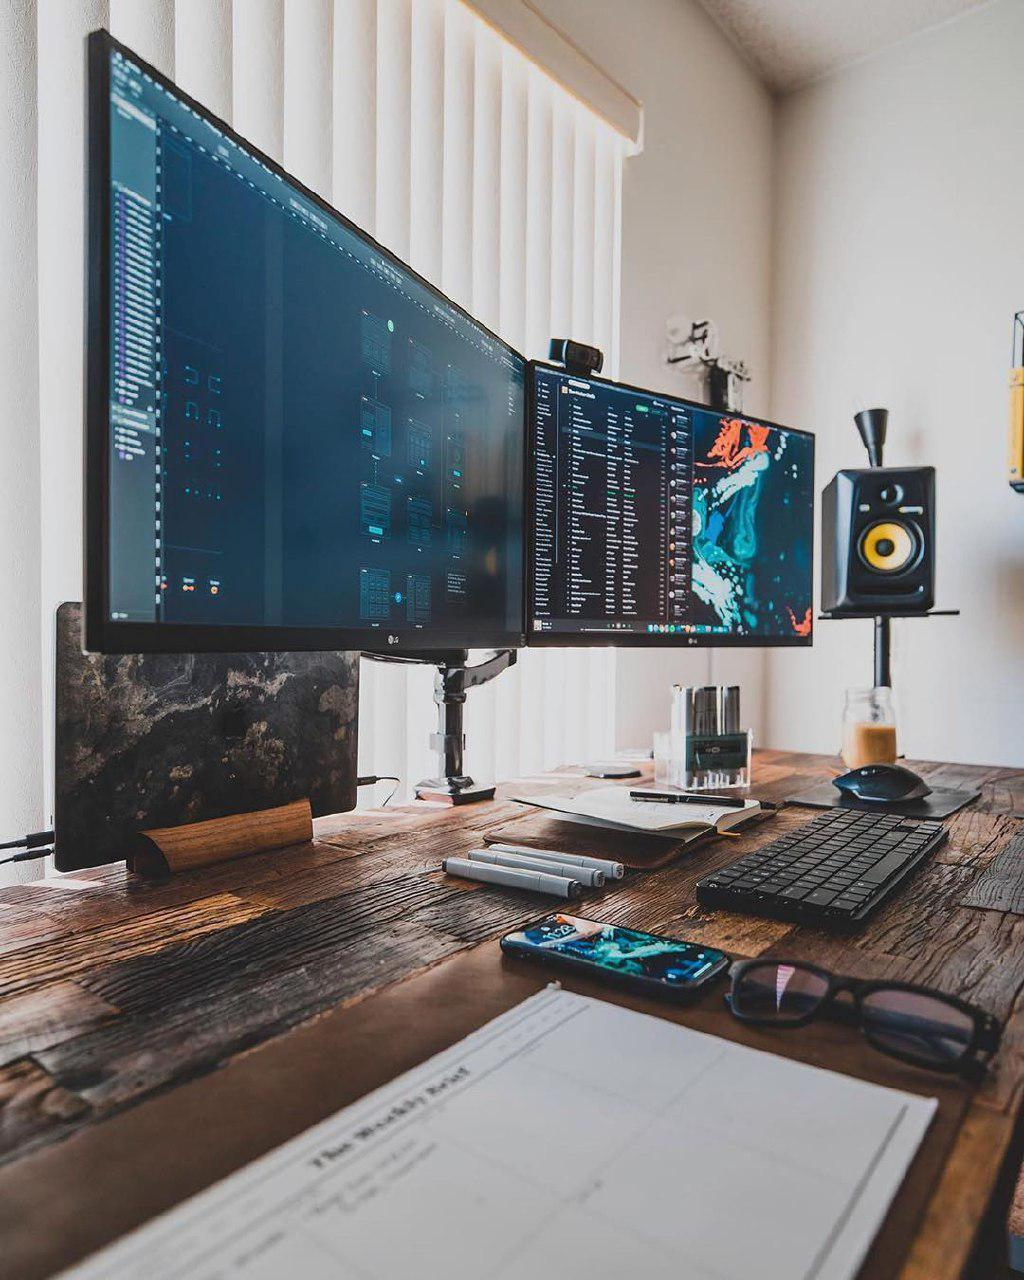 Setup and Workspace inspiration